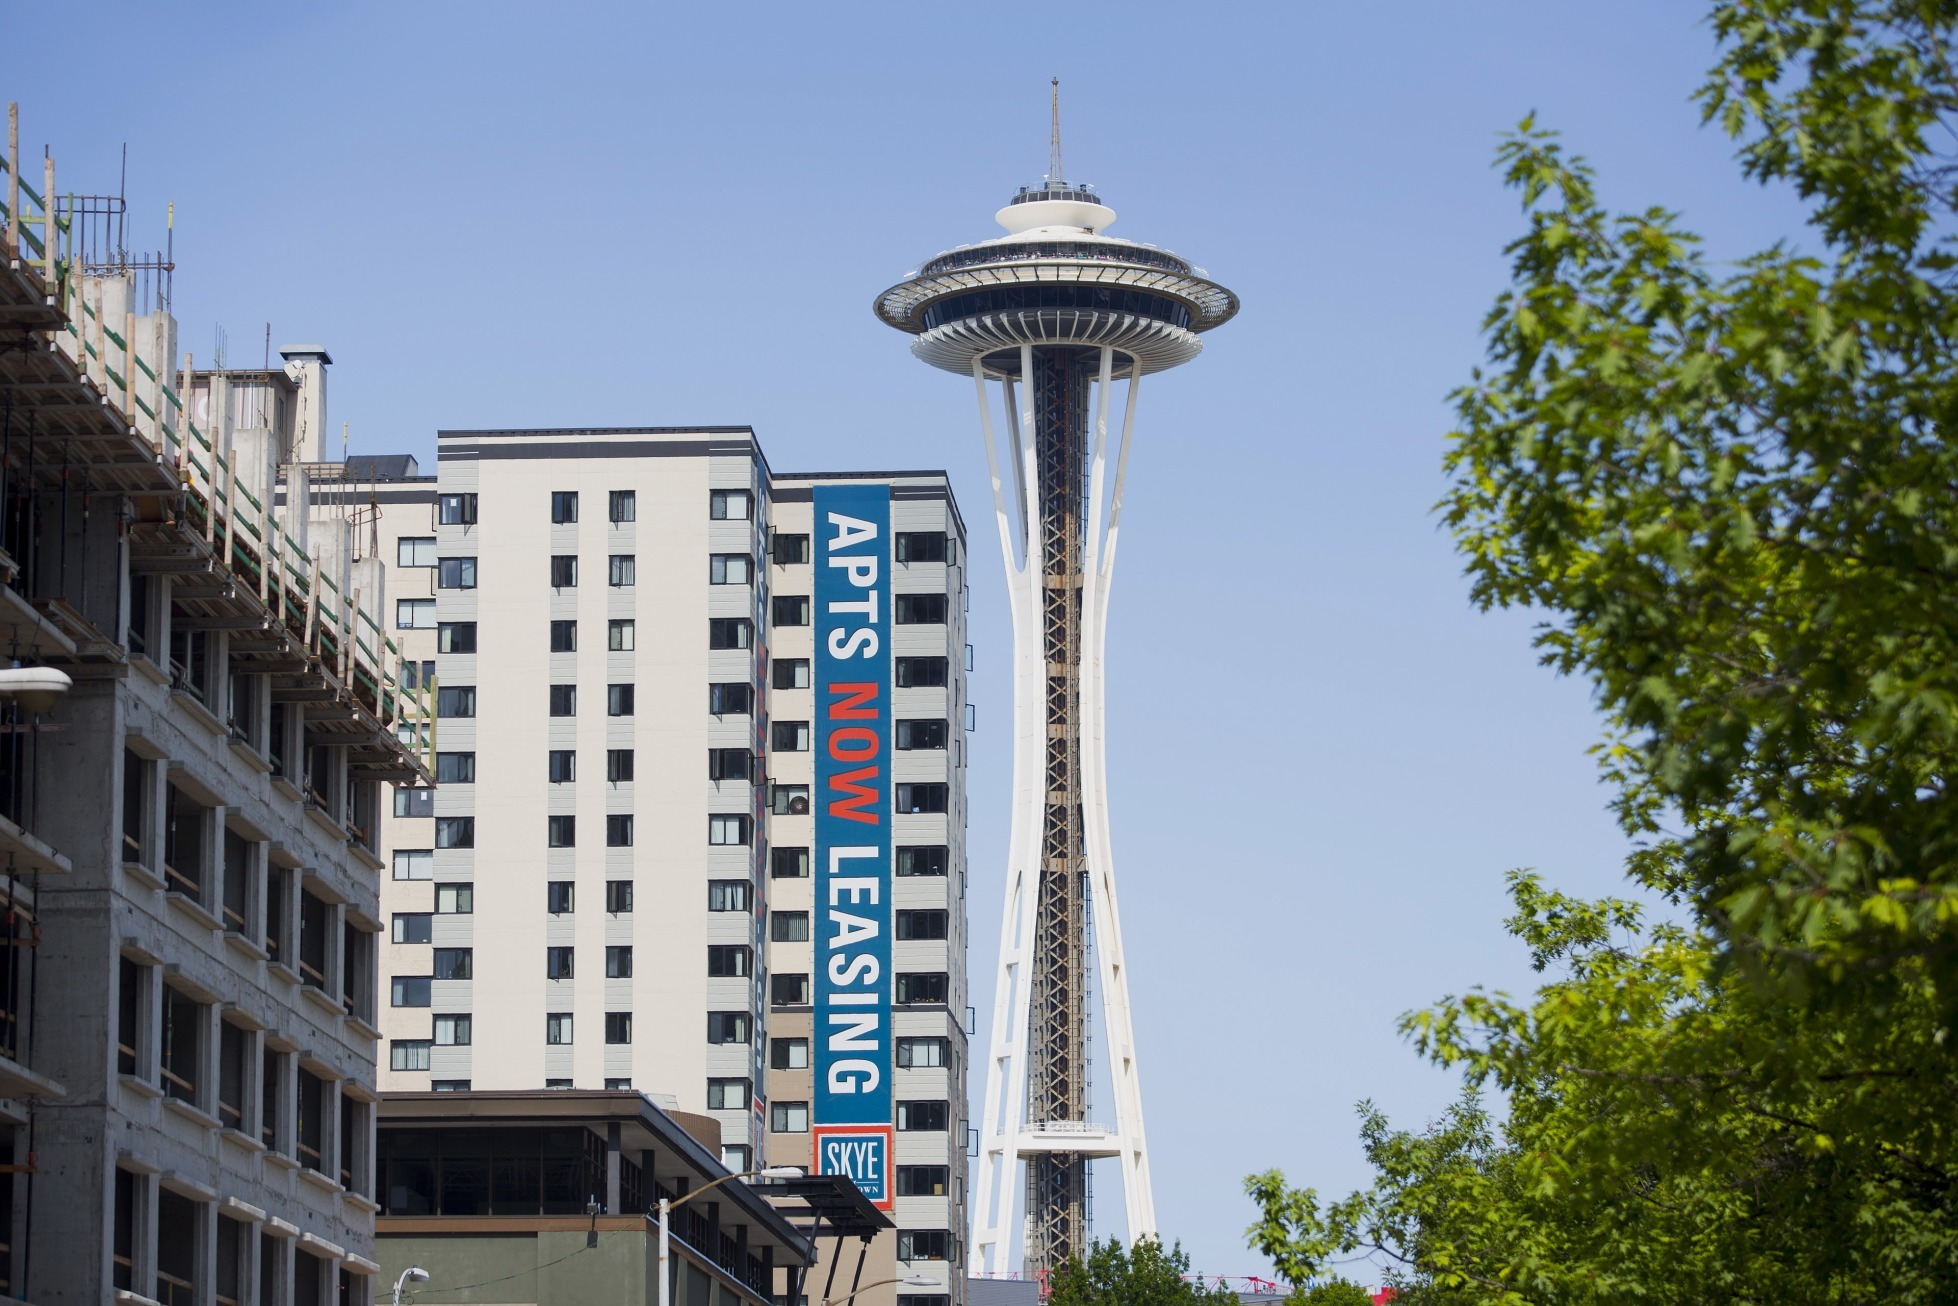 https://assets.sourcemedia.com/51/ae/877fdfd54439bd5863fb0e7e97fb/seattle-space-needle.jpg